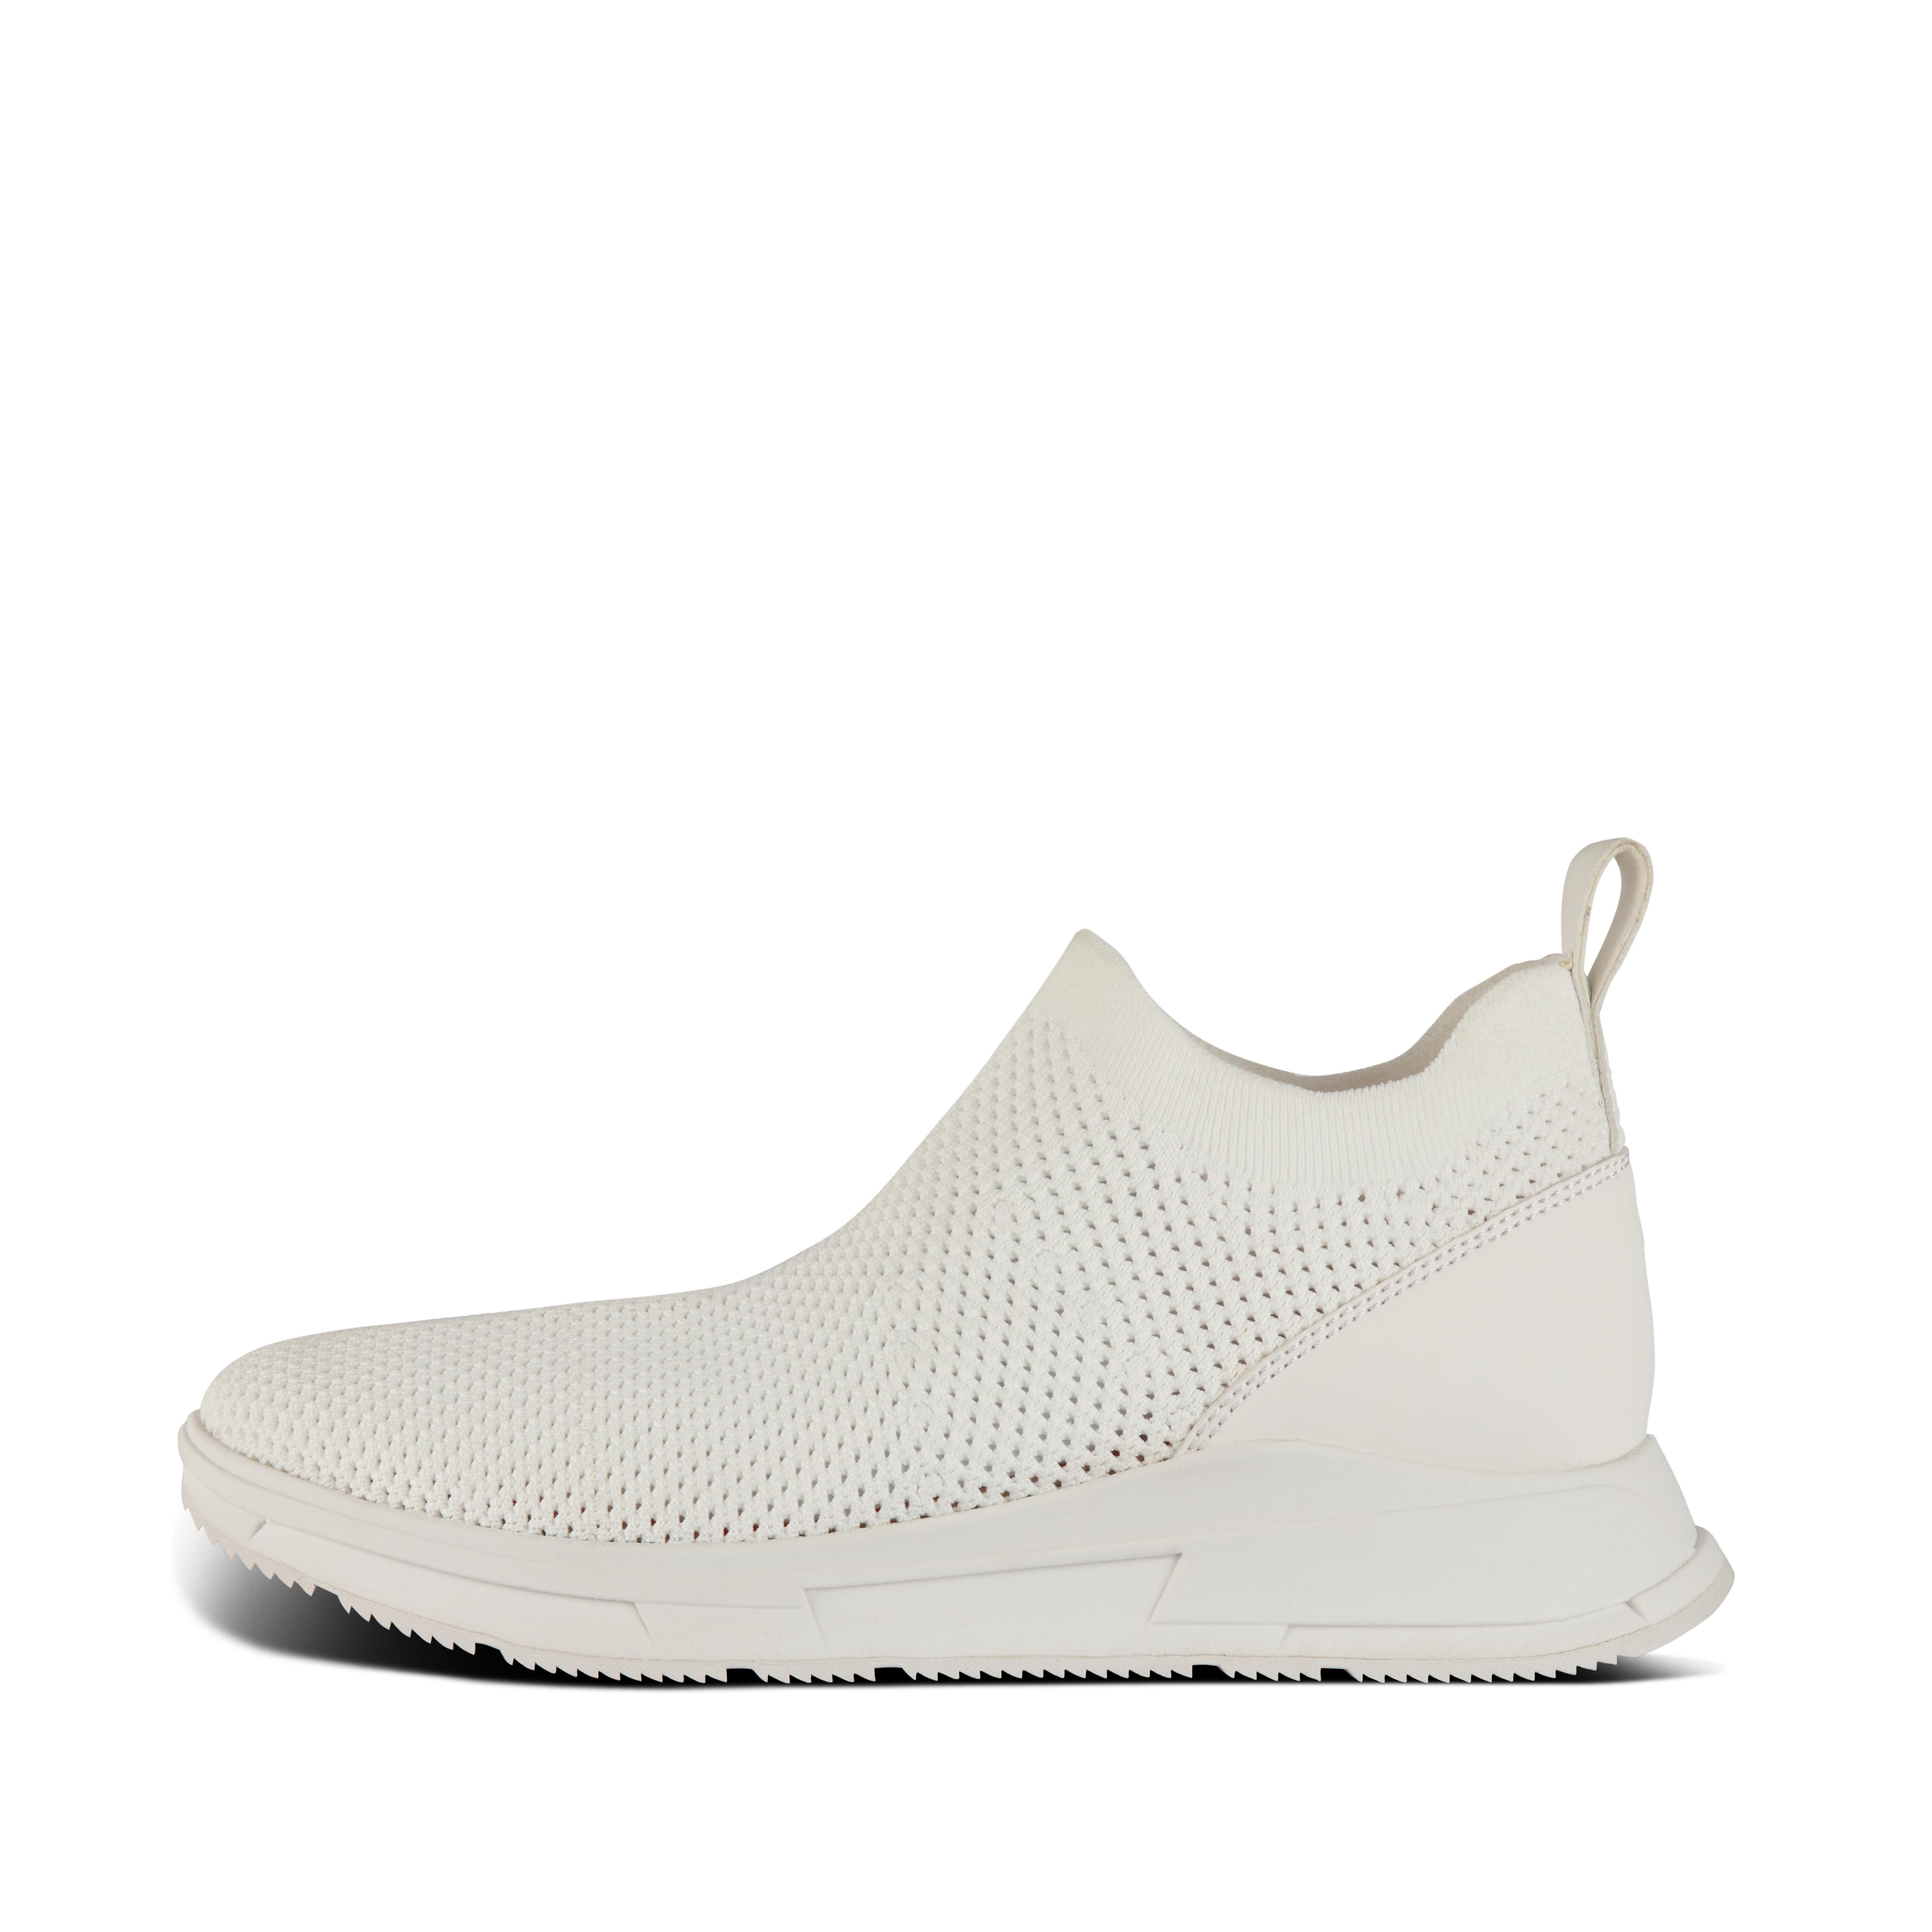 Thinking big. For the first time our popular knit sneakers step out on a chunky sole. These are simple, stretchy, slip-straight-on, in a light, perforated engineered mesh perfect for summer. Detailing includes a pull tab, curvy top line and contrast faux-leather heel panel. With the sporty-look version of our legendary, supercushioned Microwobbleboard™ midsoles delivering unbeatable all-day comfort (and that stylishly chunky silhouette).